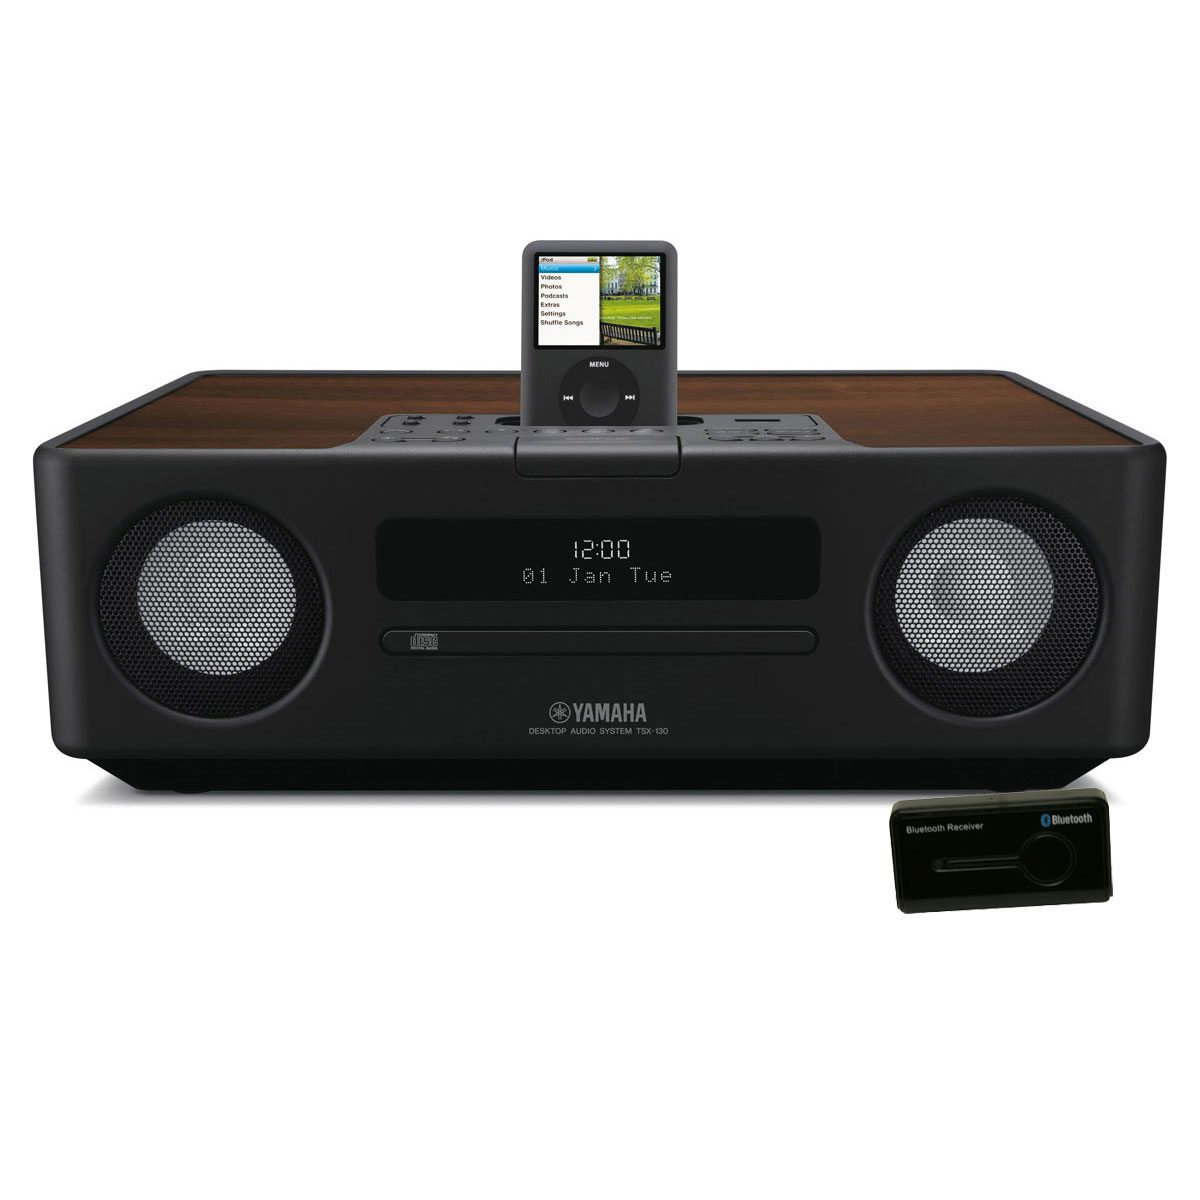 yamaha tsx 130 noir neo sound r cepteur bluetooth dock enceinte bluetooth yamaha sur ldlc. Black Bedroom Furniture Sets. Home Design Ideas